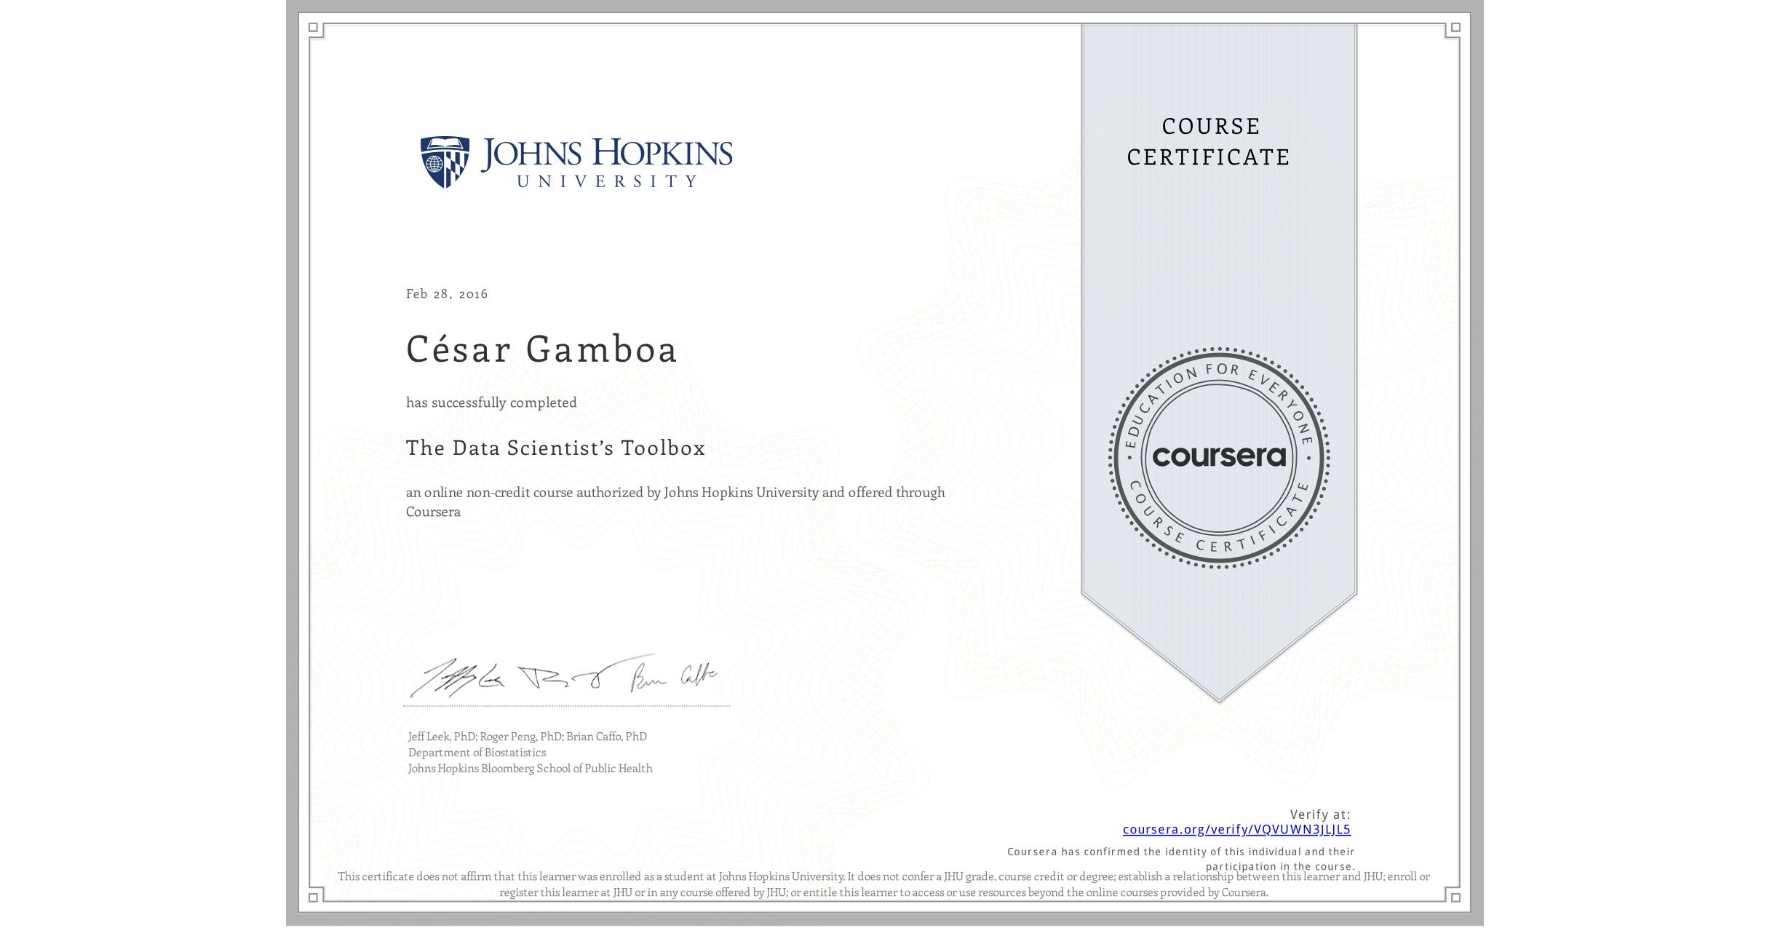 View certificate for César Gamboa, The Data Scientist's Toolbox, an online non-credit course authorized by Johns Hopkins University and offered through Coursera